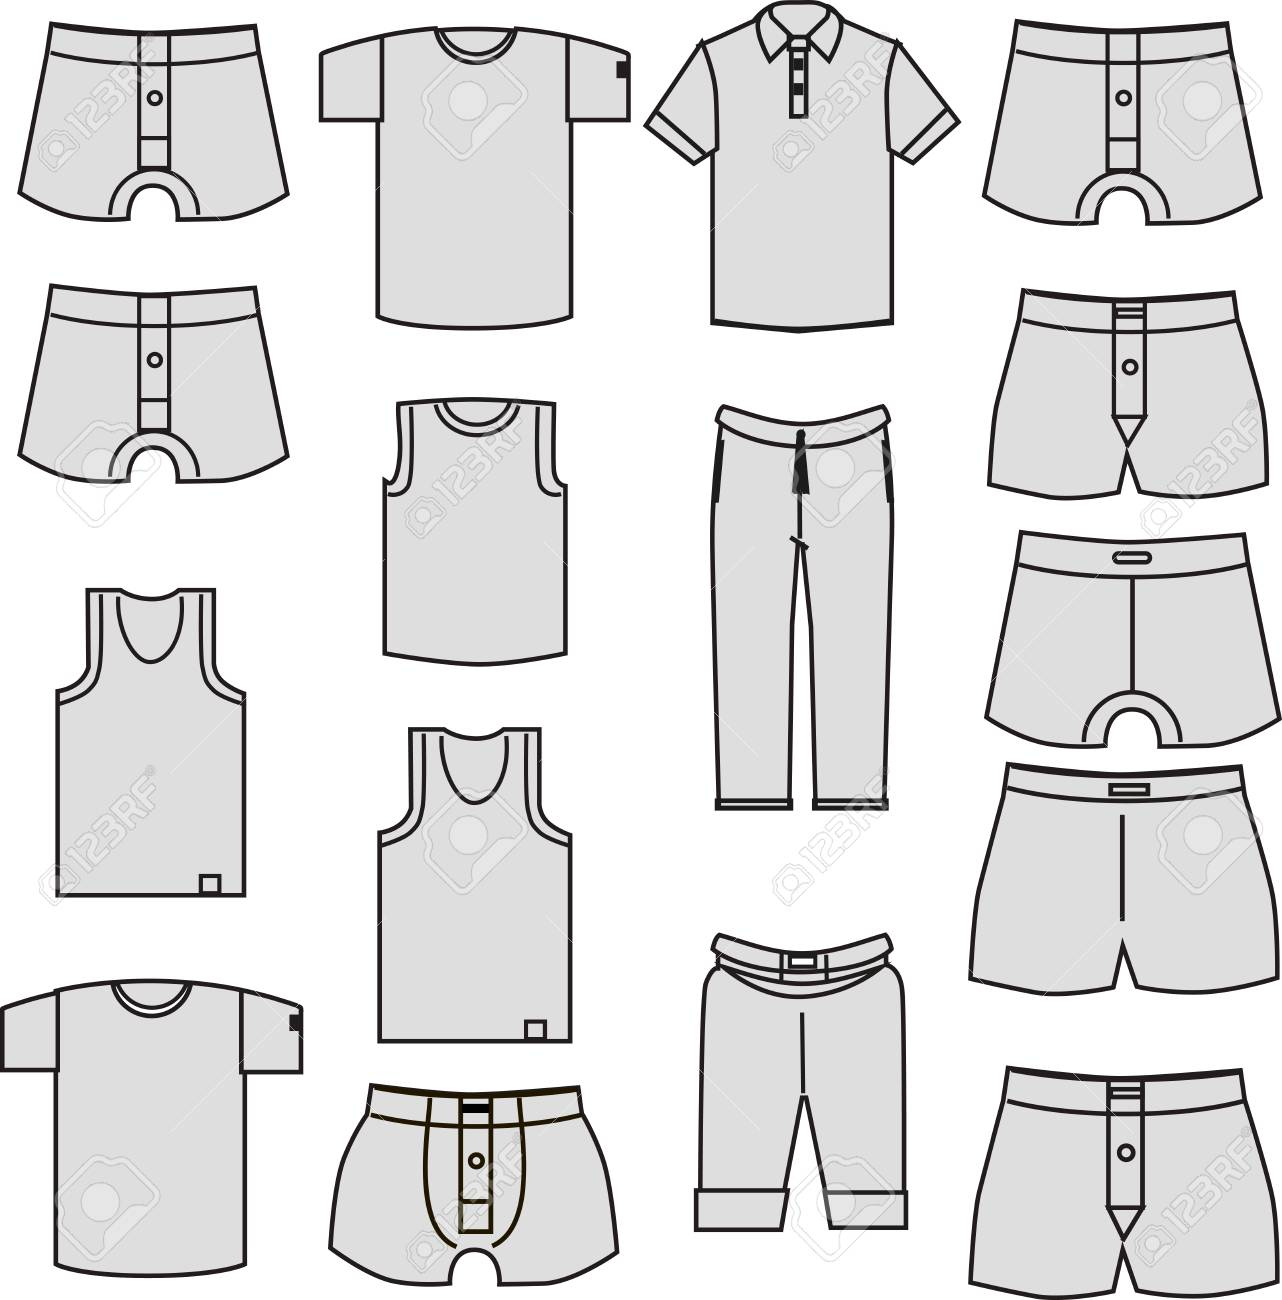 49f6c4de766a underwear for men. Template gray clothes icons isolated on white background  Stock Vector - 67424492